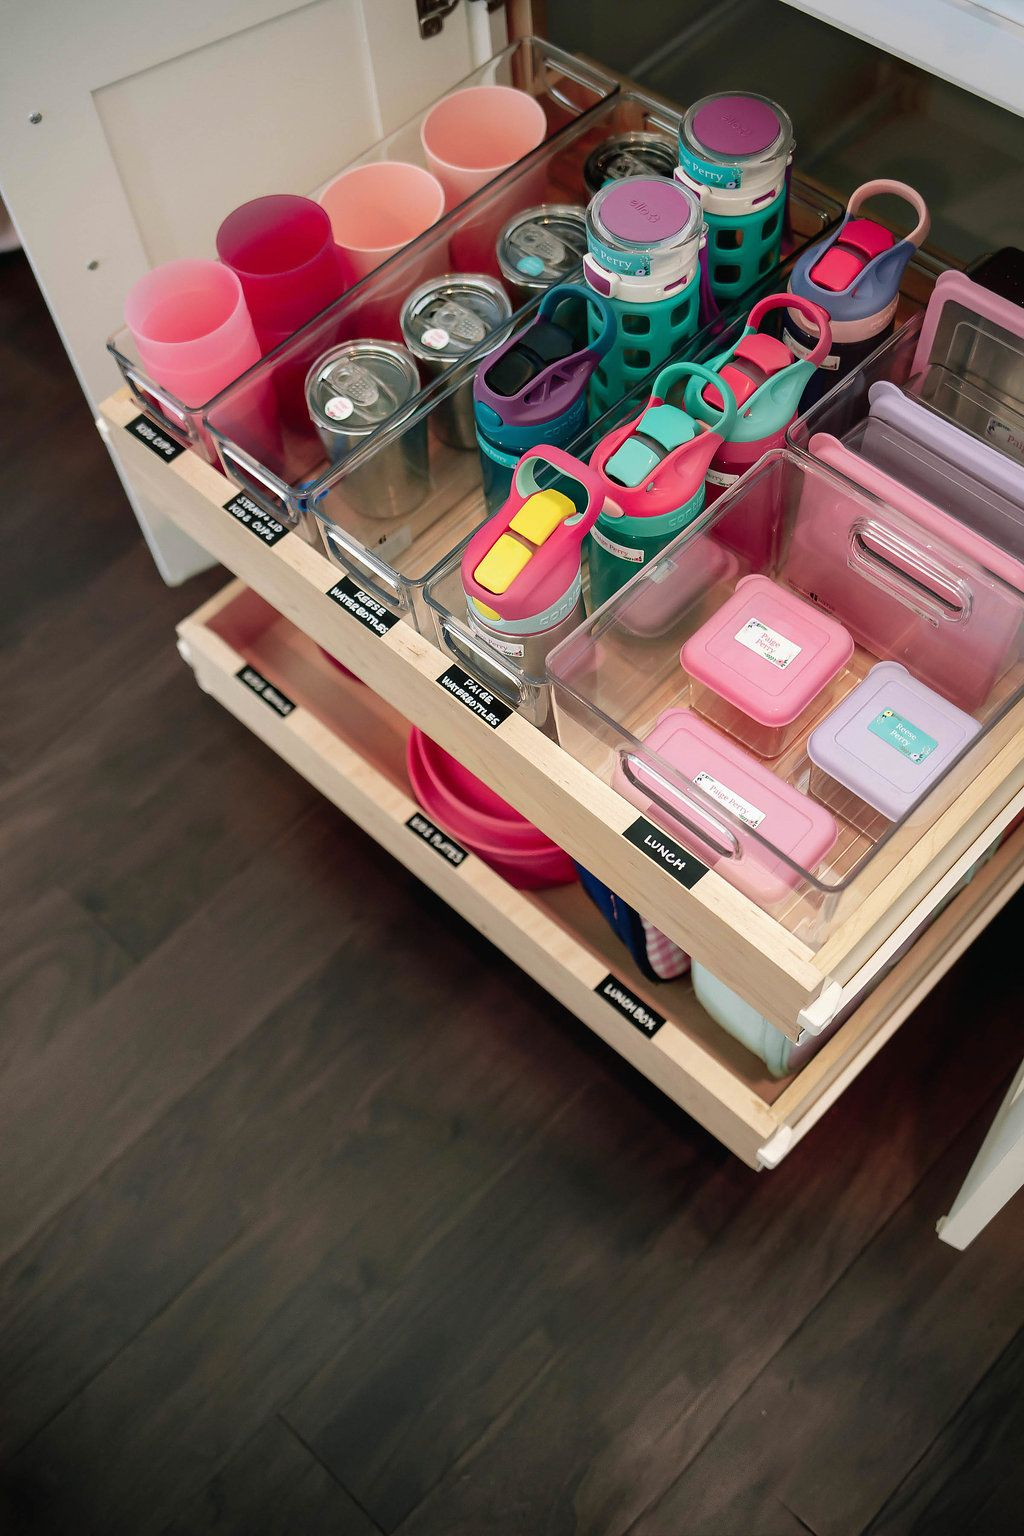 How to organize kids tupperware, water bottles, and plates in the kitchen. How to organize the kids drawer. Tips for organizing the kids kitchen cabinet. Our Home : The Kids Cabinet – Mika Perry #organizekitchen